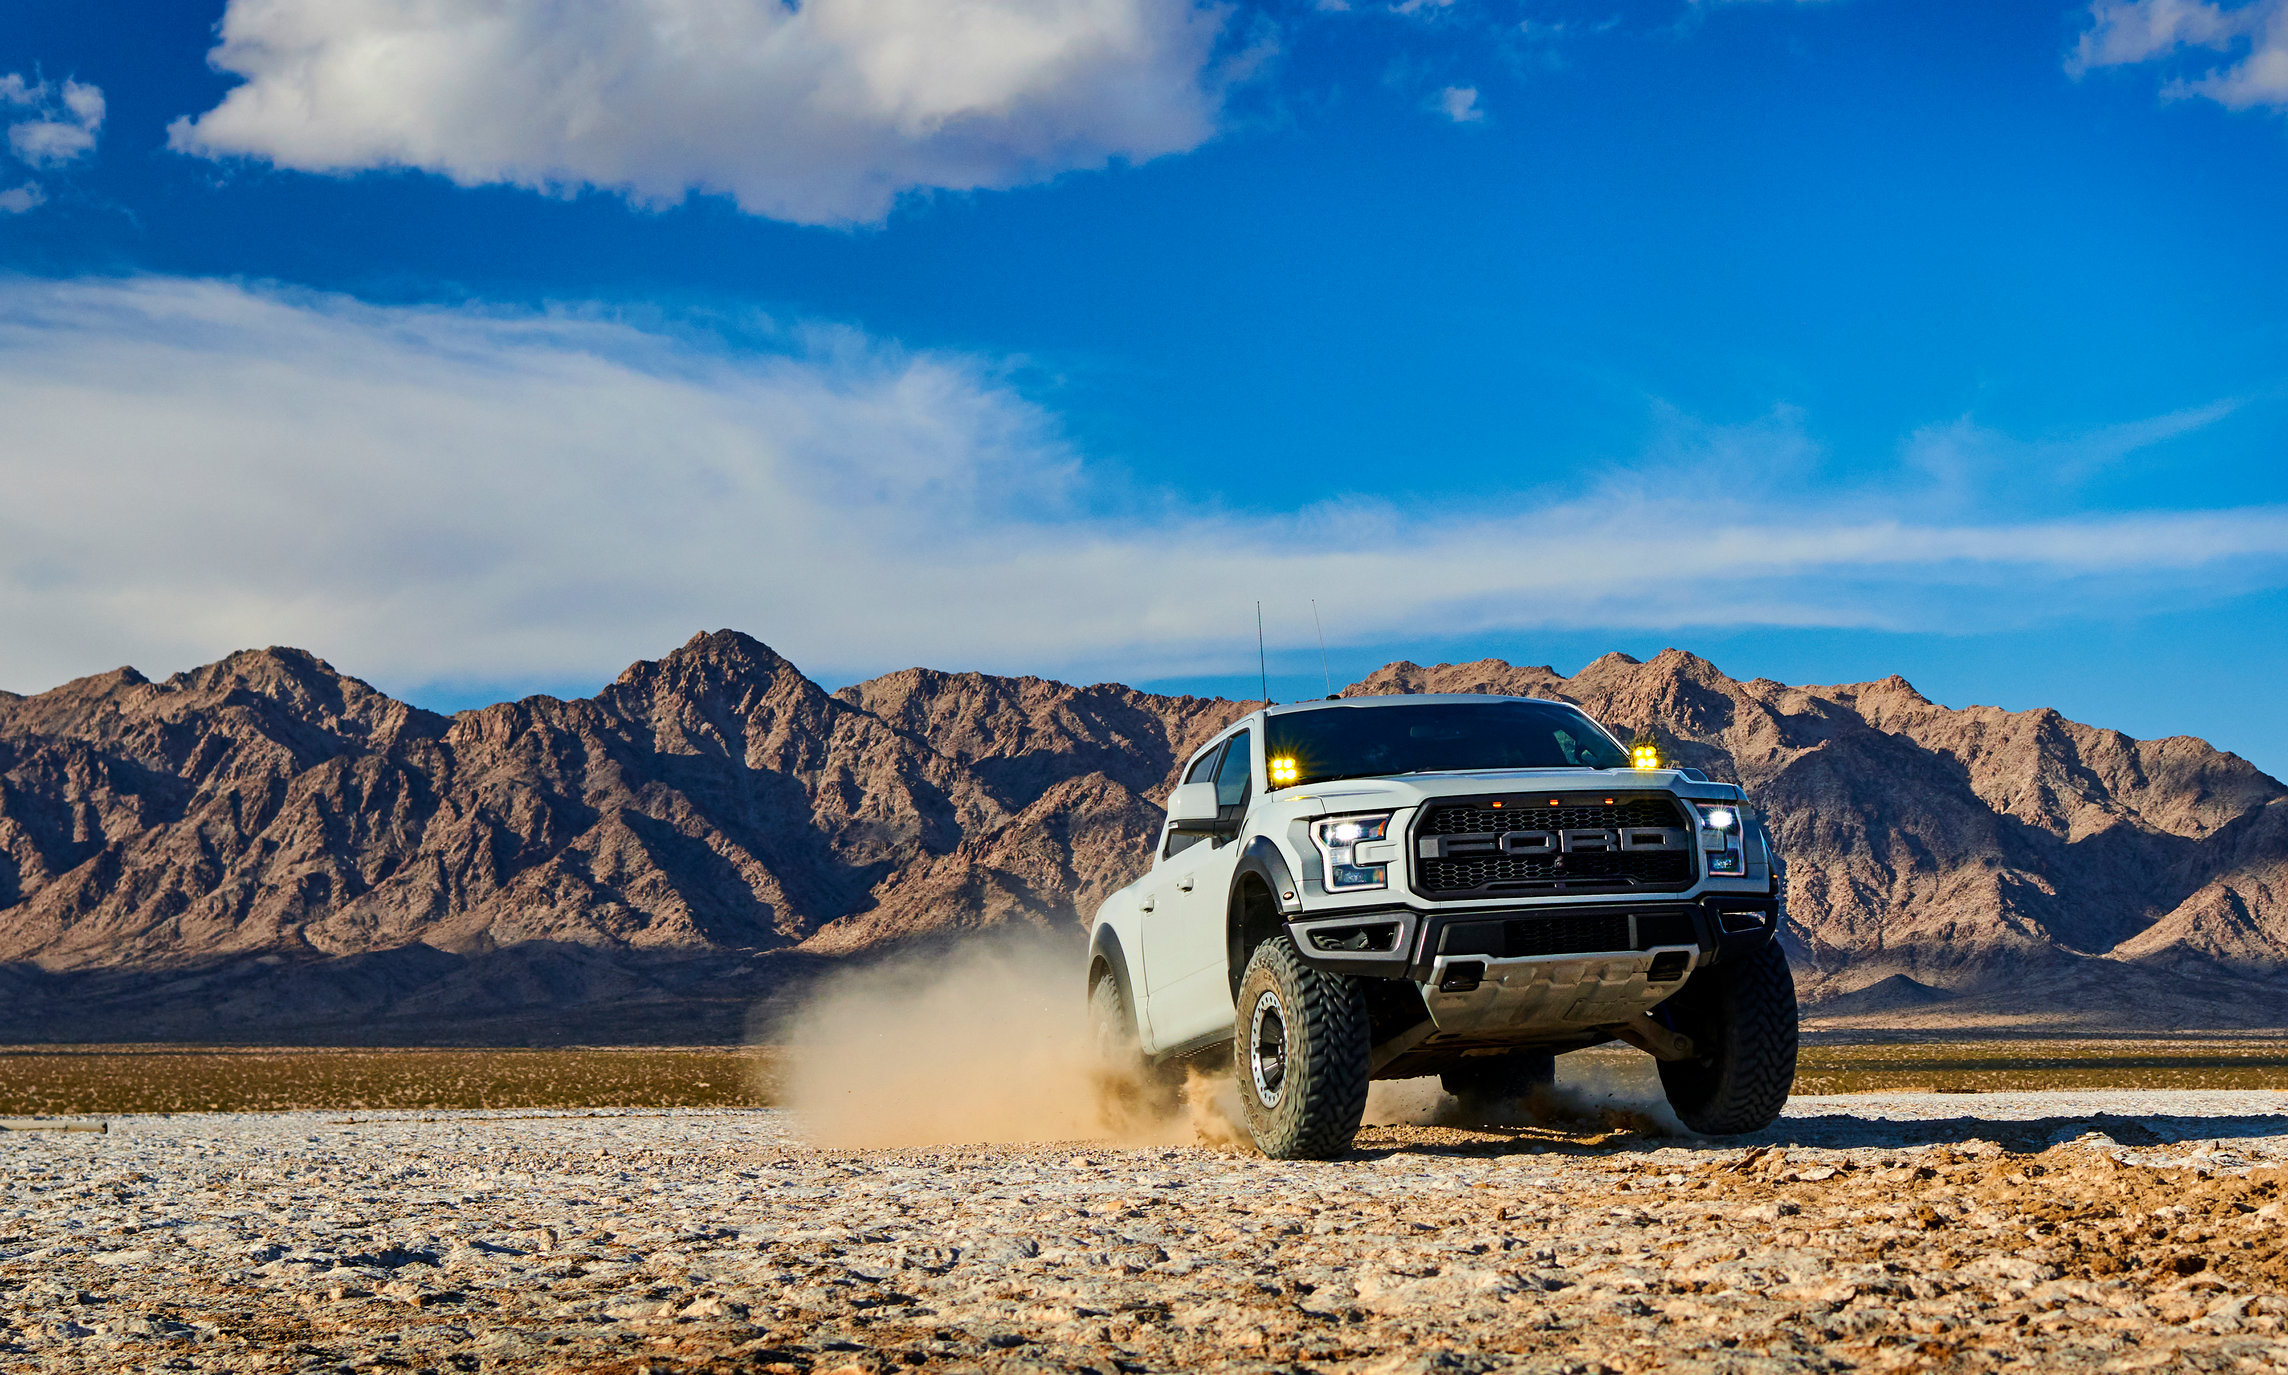 Motors_Make_Model_Ford_Raptor_Hero_354 1.jpg